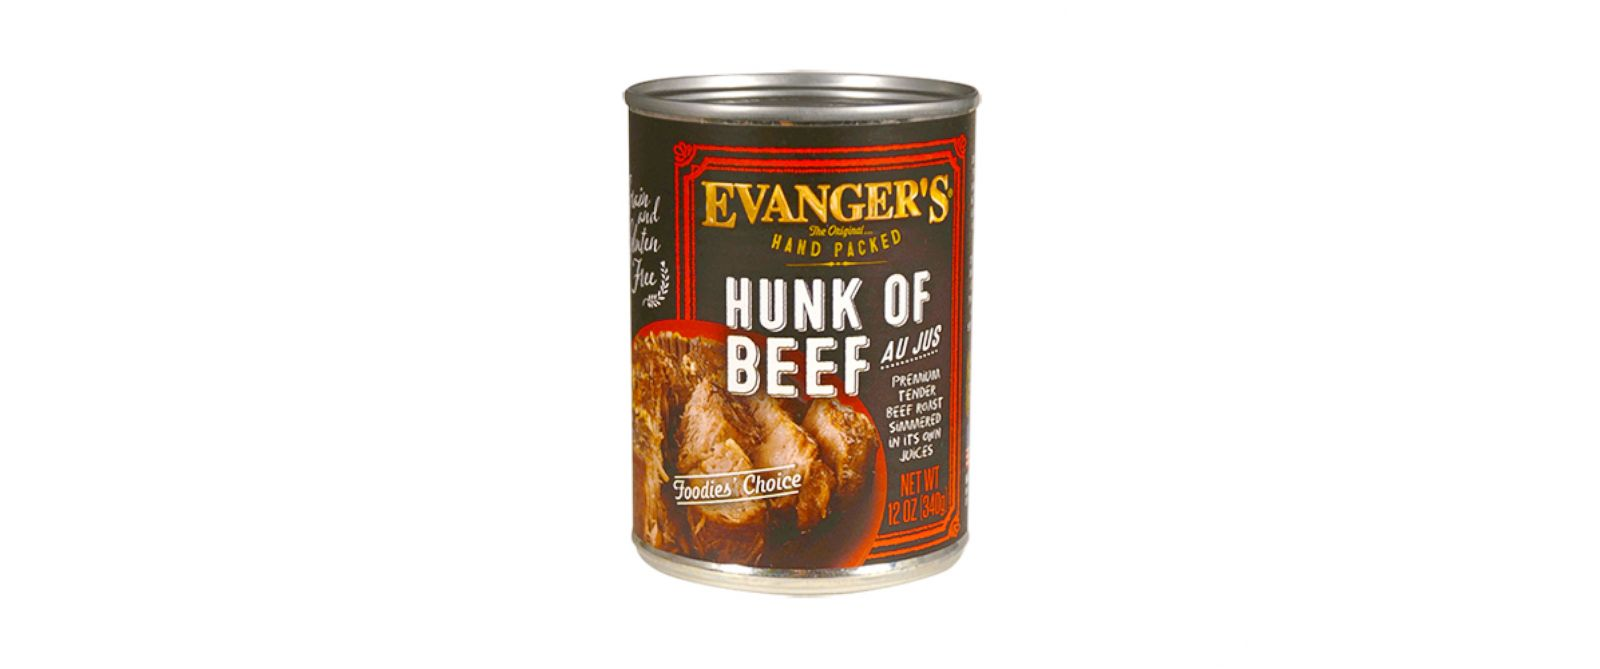 Evangers Dog Food Recall